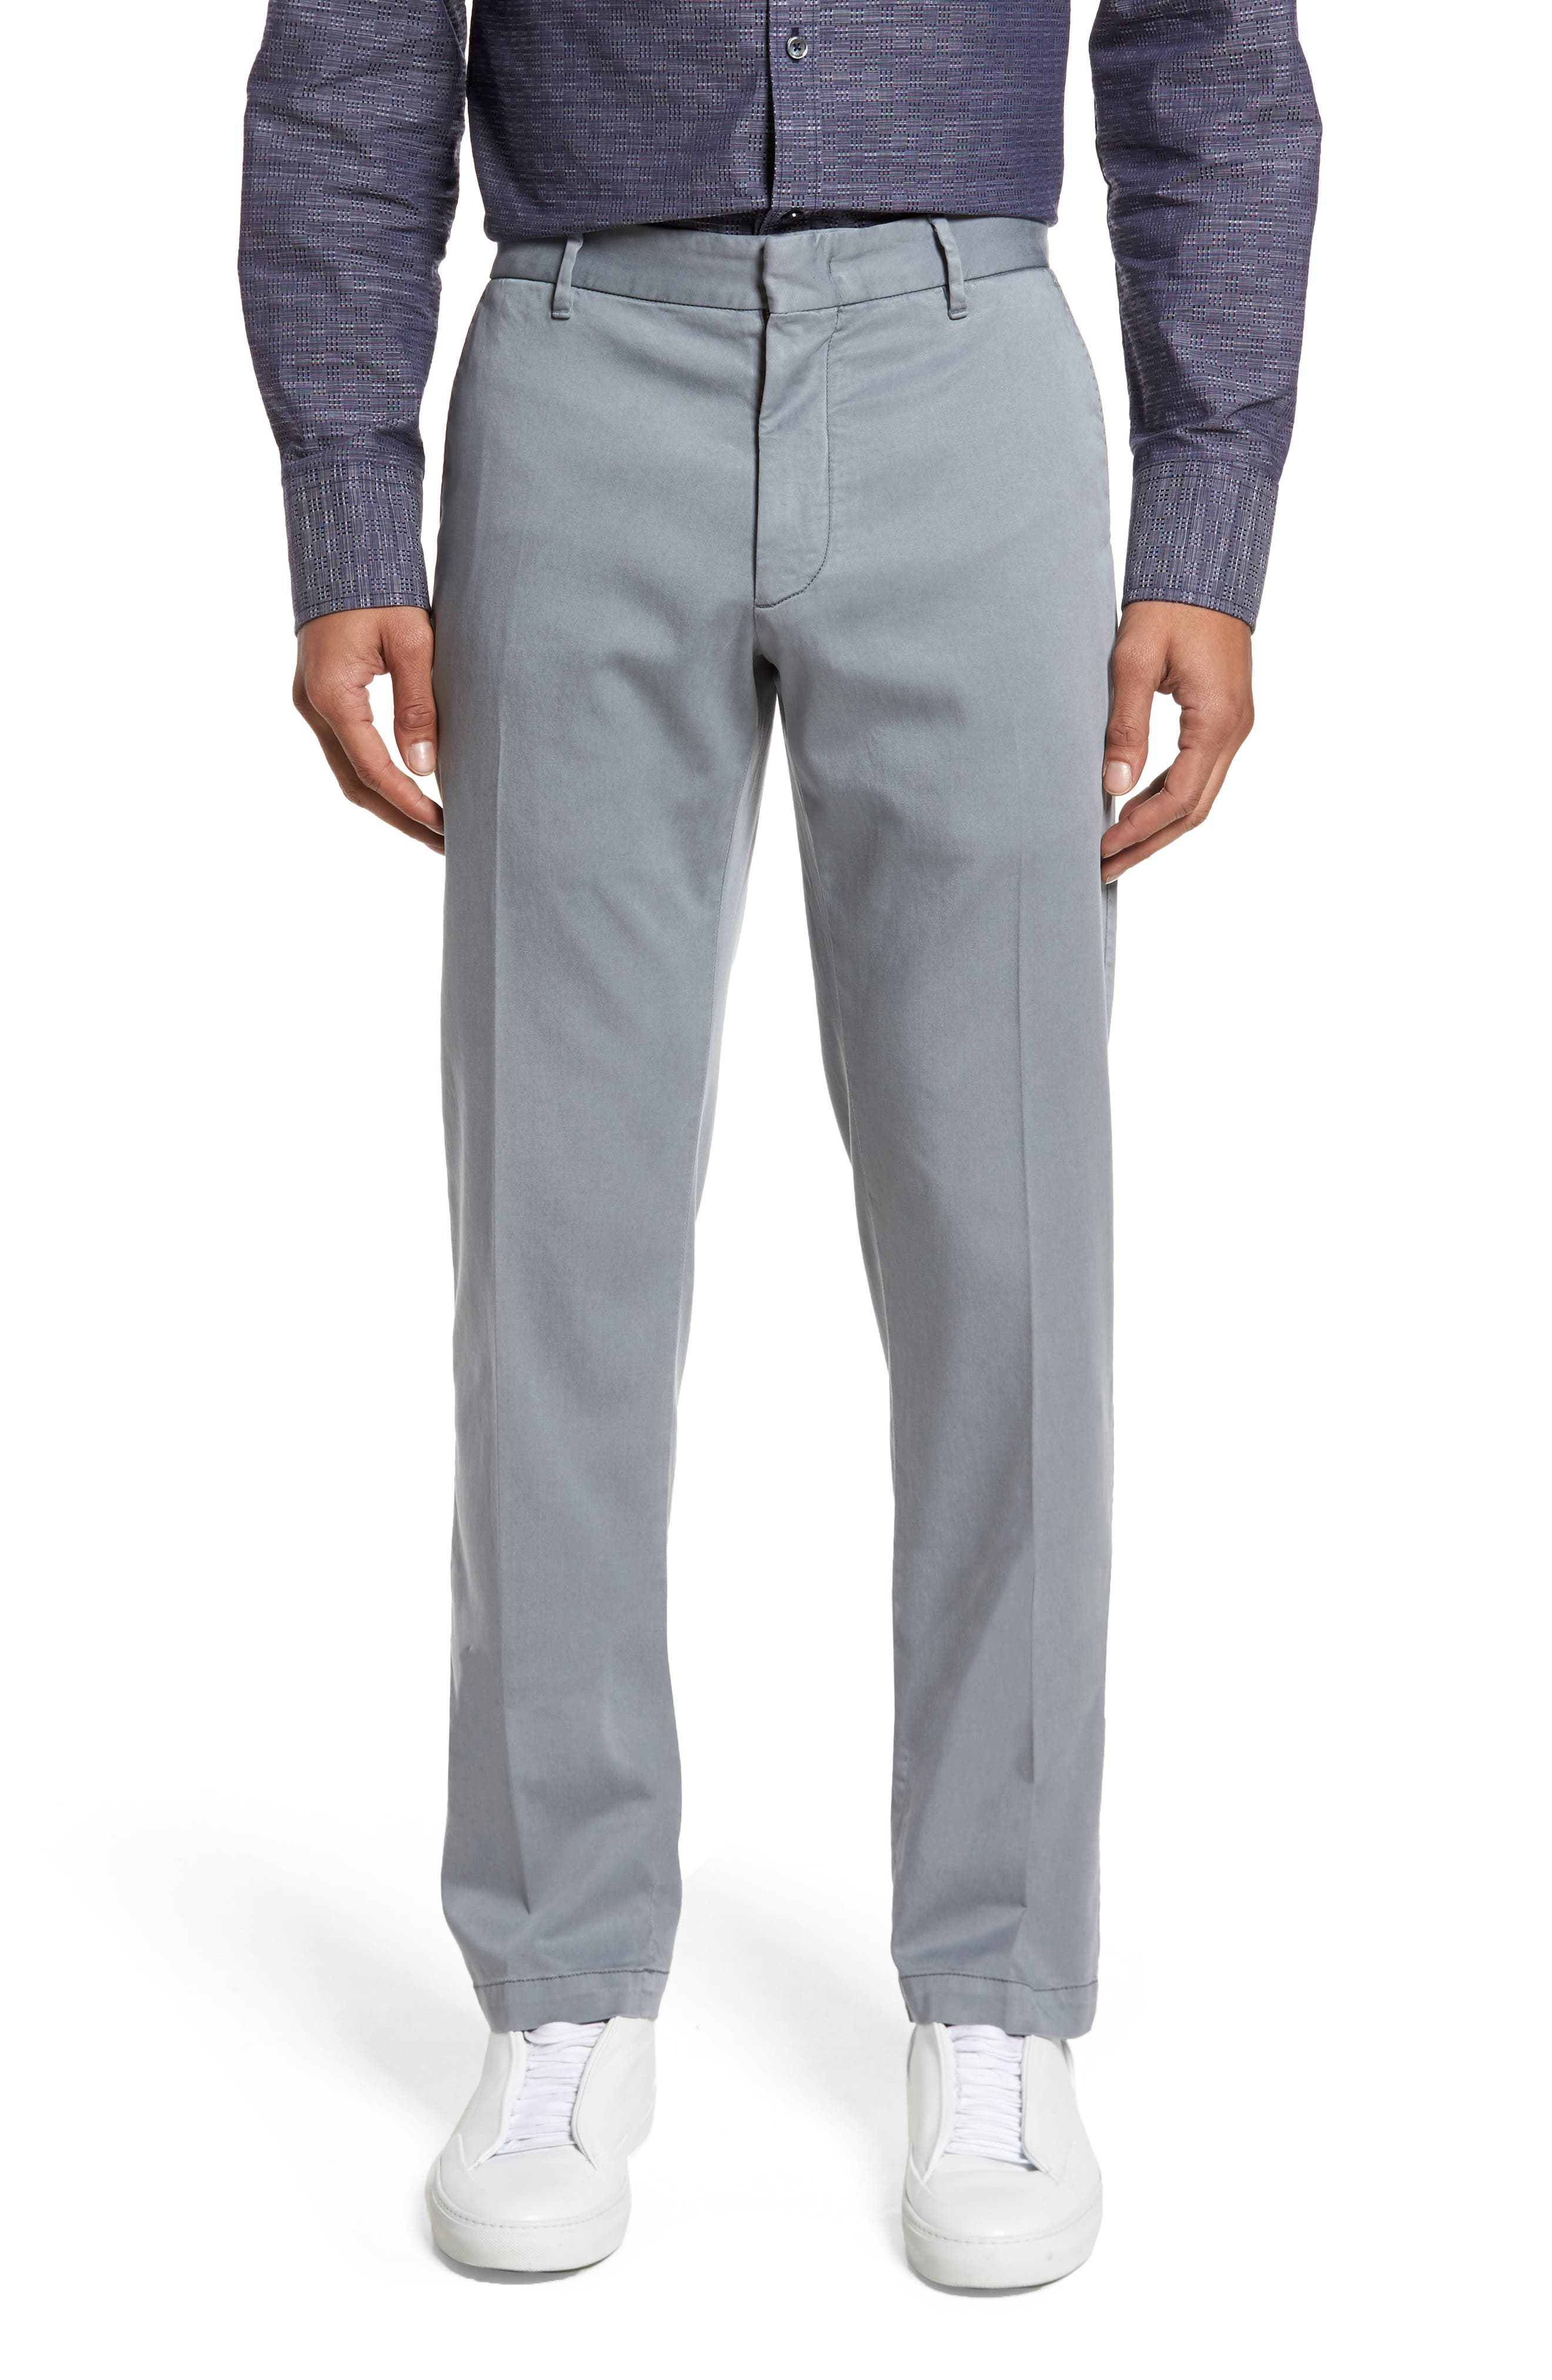 ZACHARY PRELL Aster Straight Fit Pants, Main, color, GREY